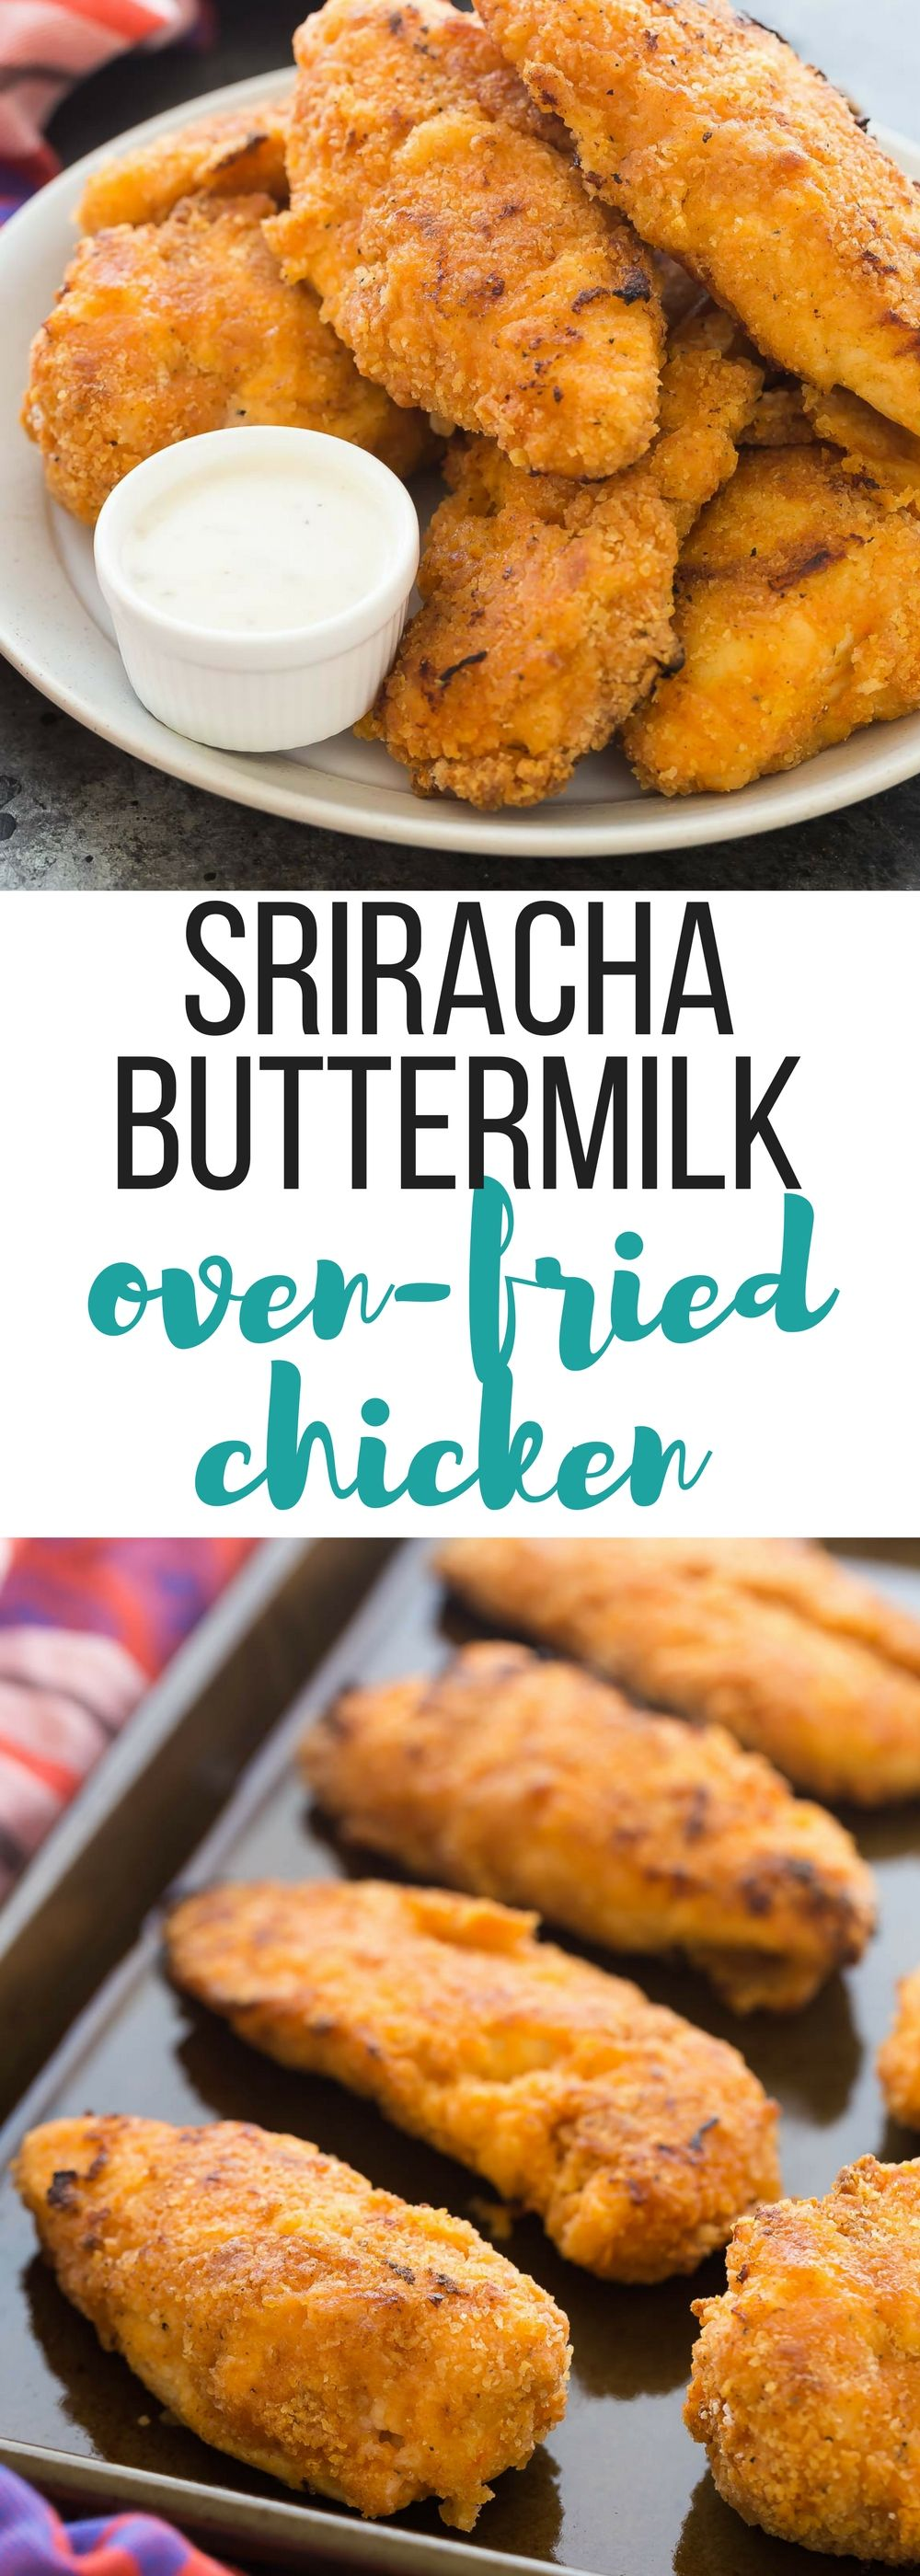 This Crispy Sriracha Buttermilk Oven Fried Chicken Is So Moist And Juicy With Just The Righ Fried Chicken Recipes Oven Fried Chicken Recipes Oven Fried Chicken